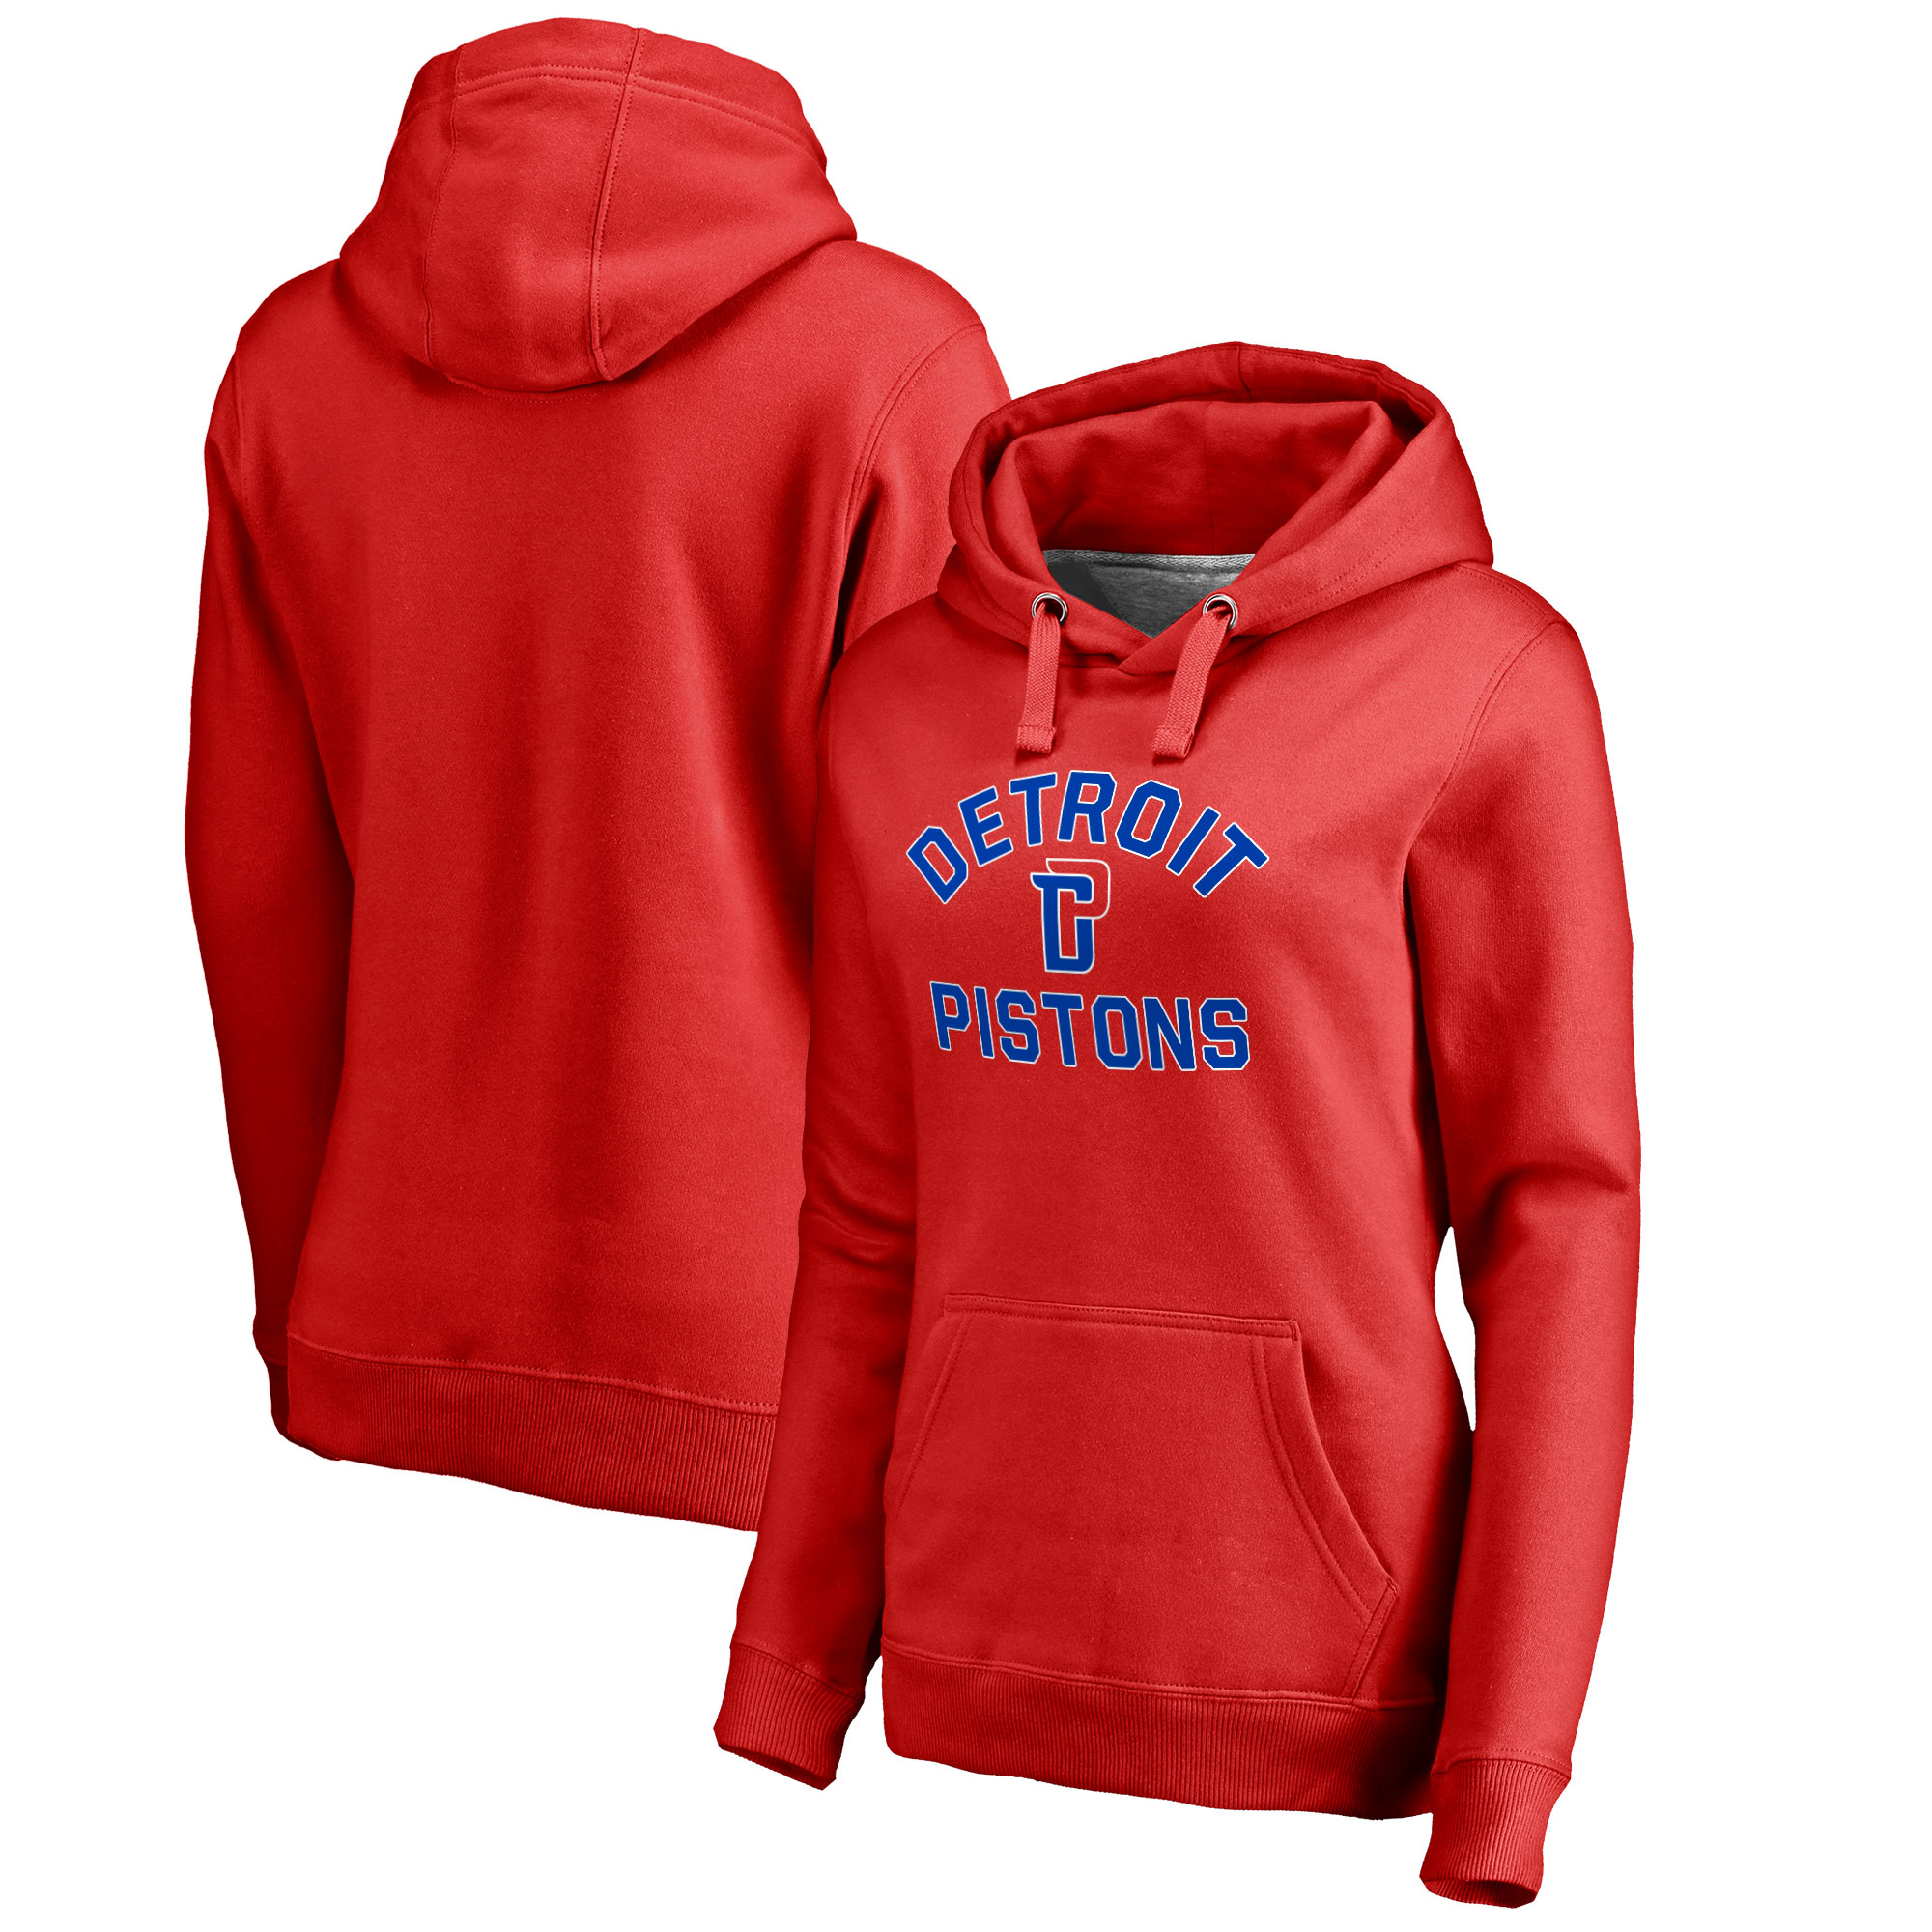 Detroit Pistons Fanatics Branded Women's Plus Size Overtime Pullover Hoodie - Red